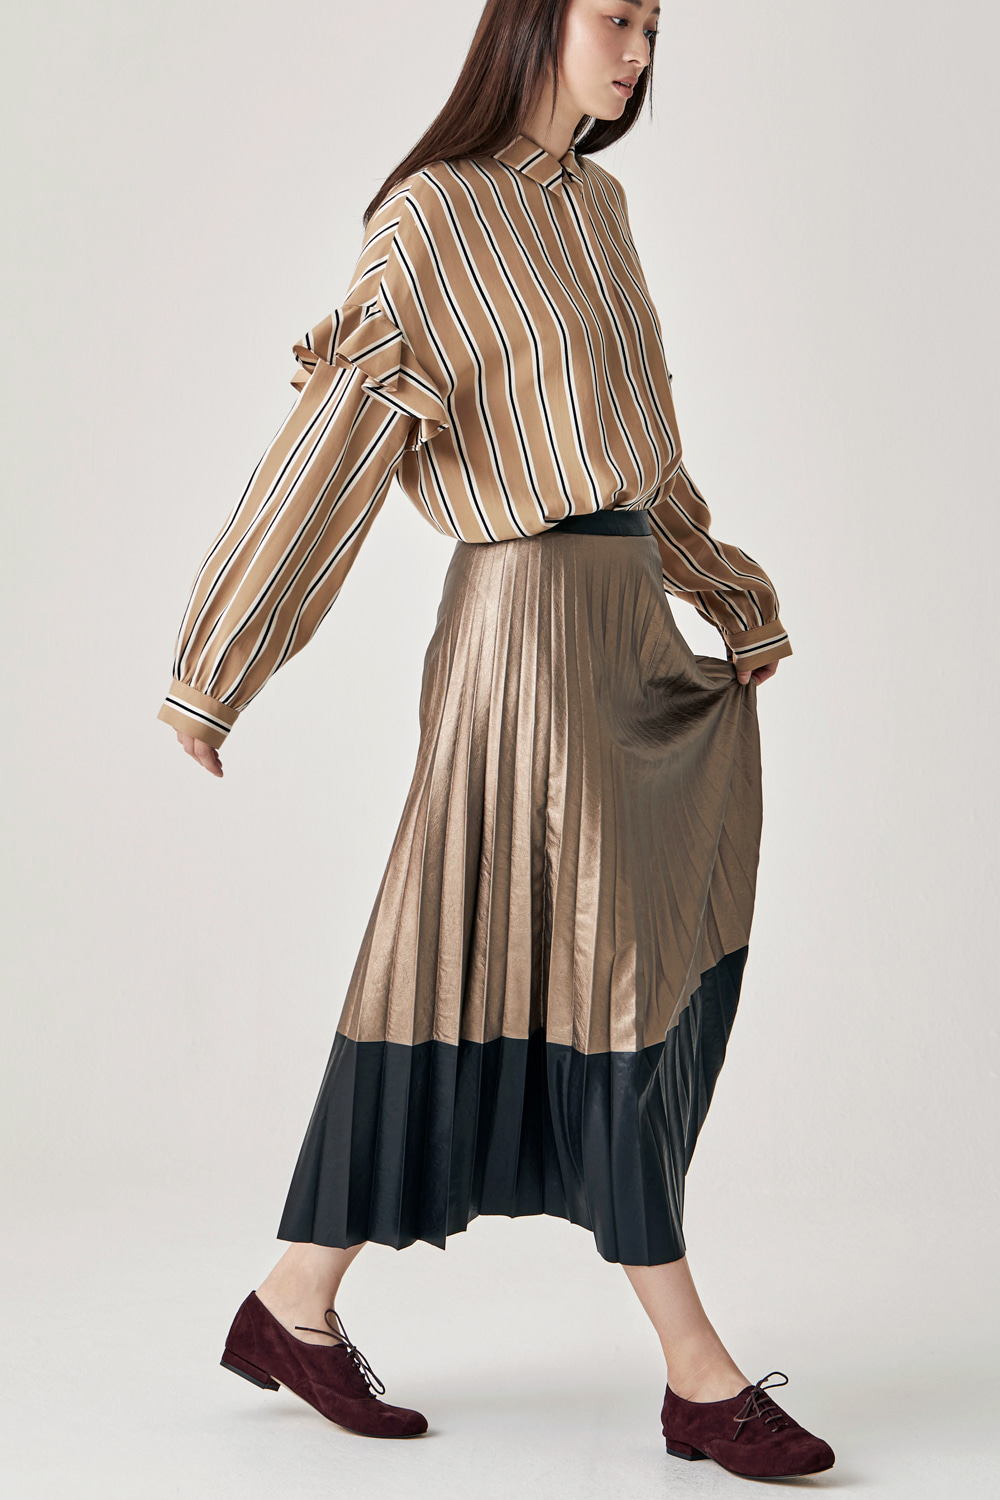 Full Pleats Skirt - Gold